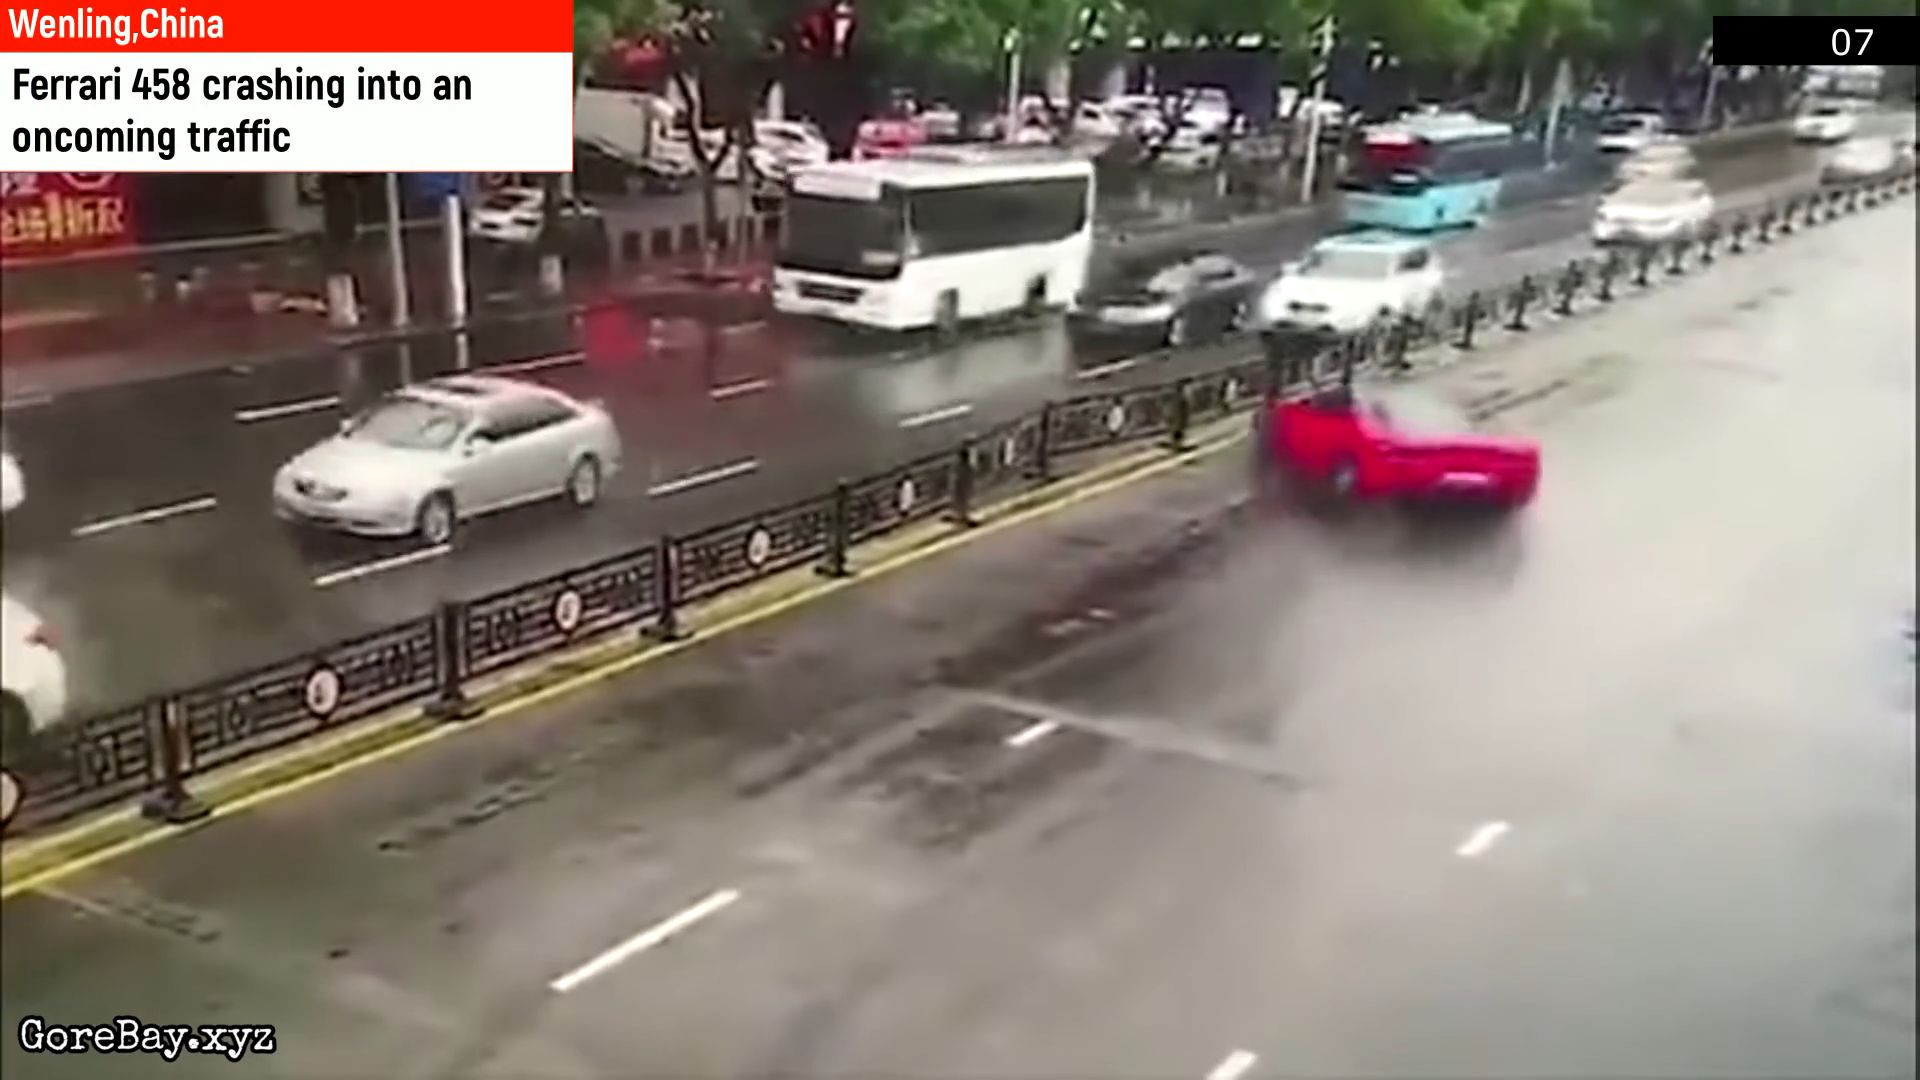 Woman wrecks Ferrari moments after renting it 13